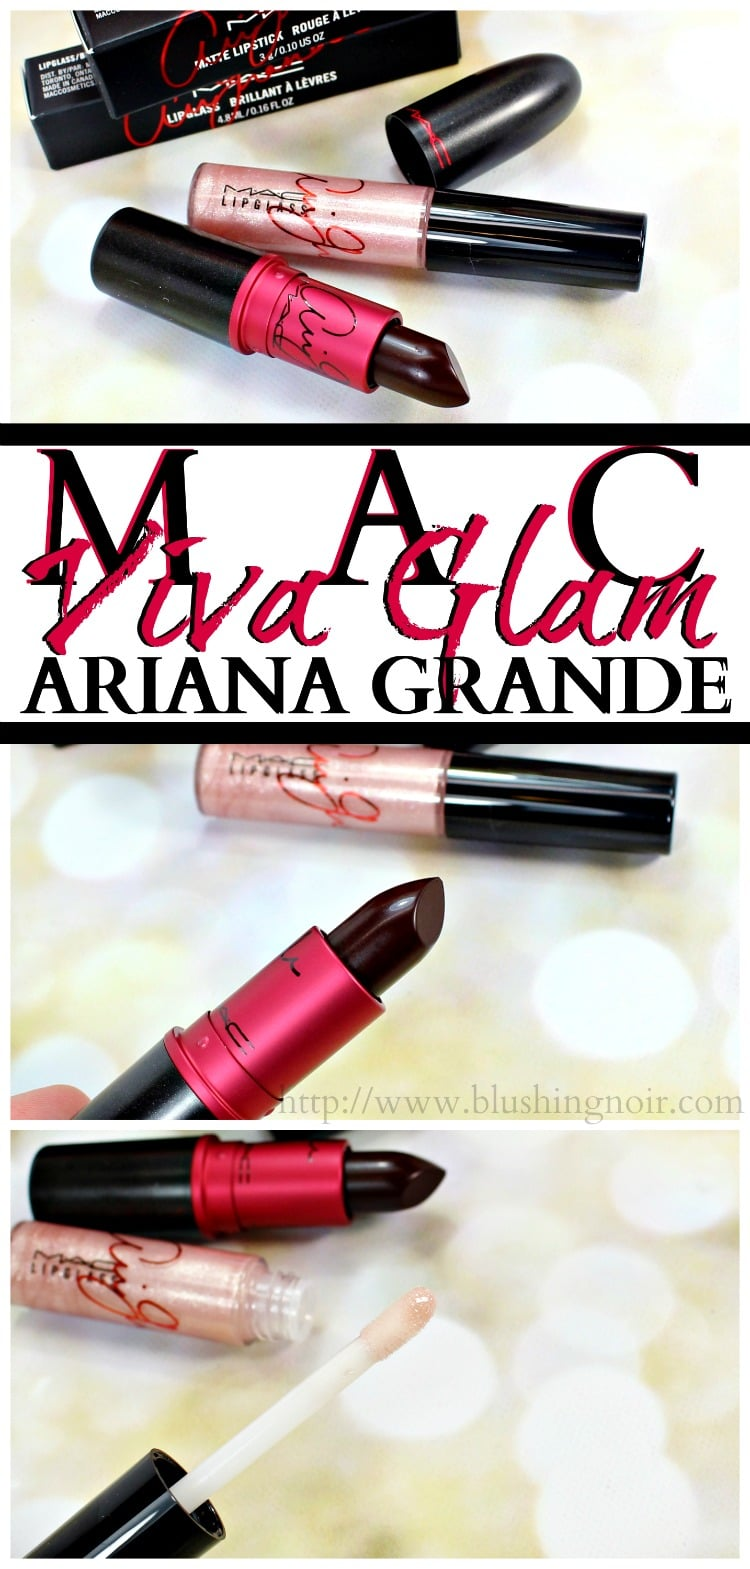 MAC Ariana Grande Viva Glam Lipstick Lipglass swatches review